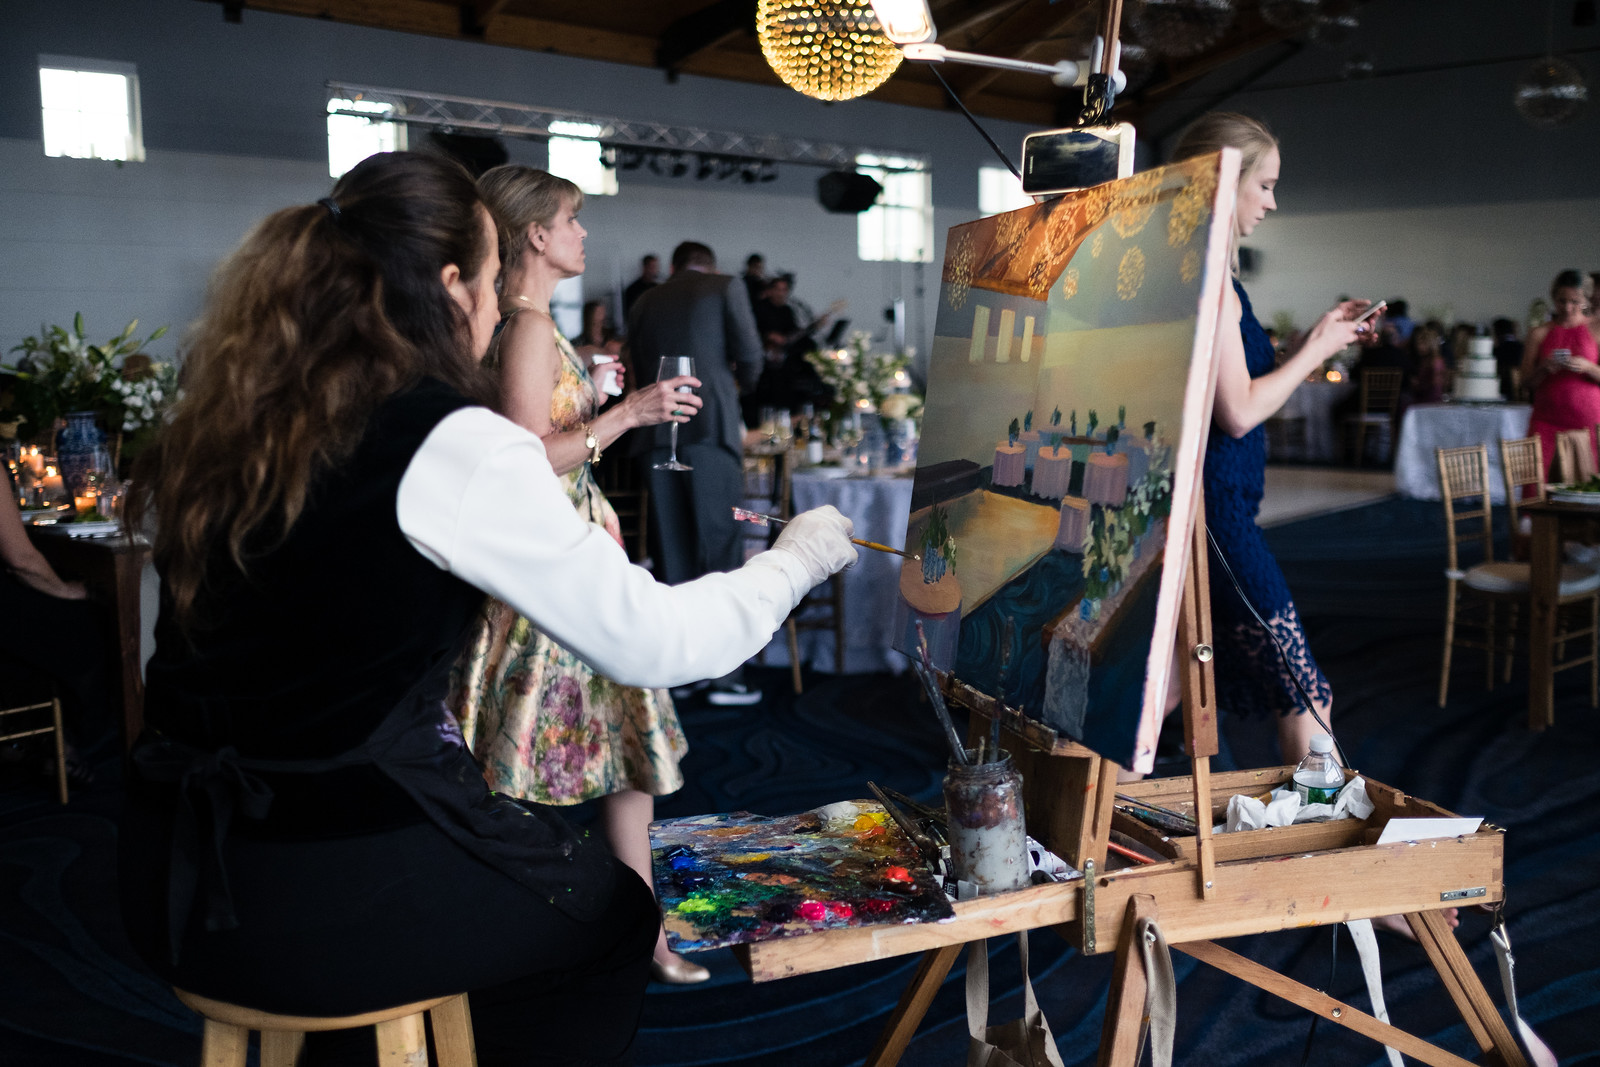 Painting the event